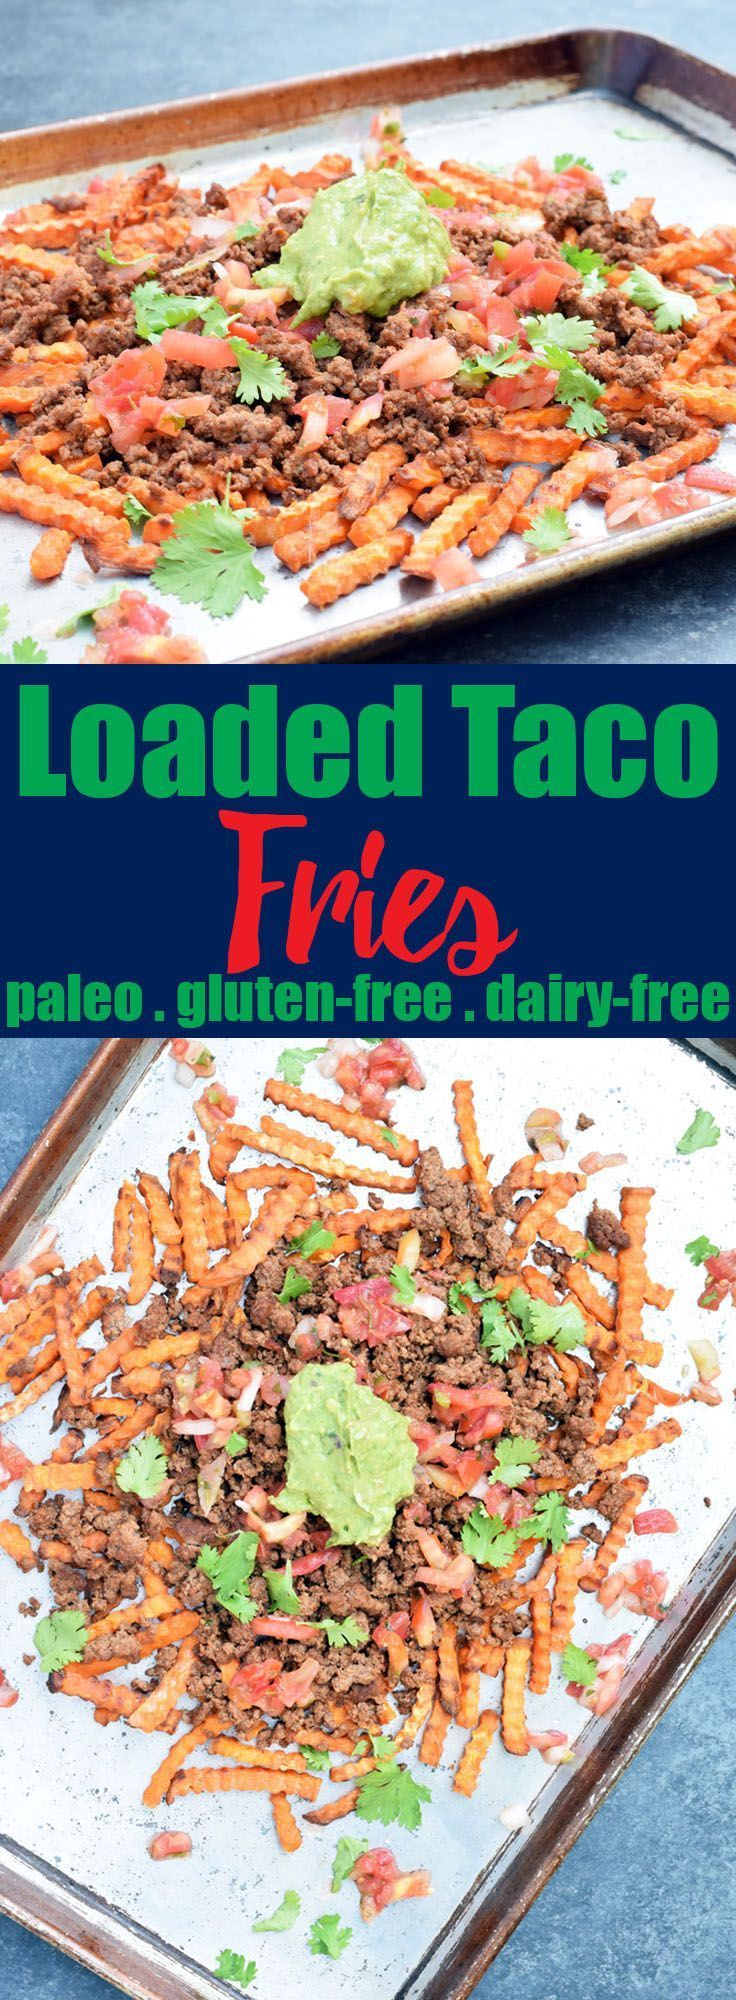 Food wine conference recap loaded taco fries paleo